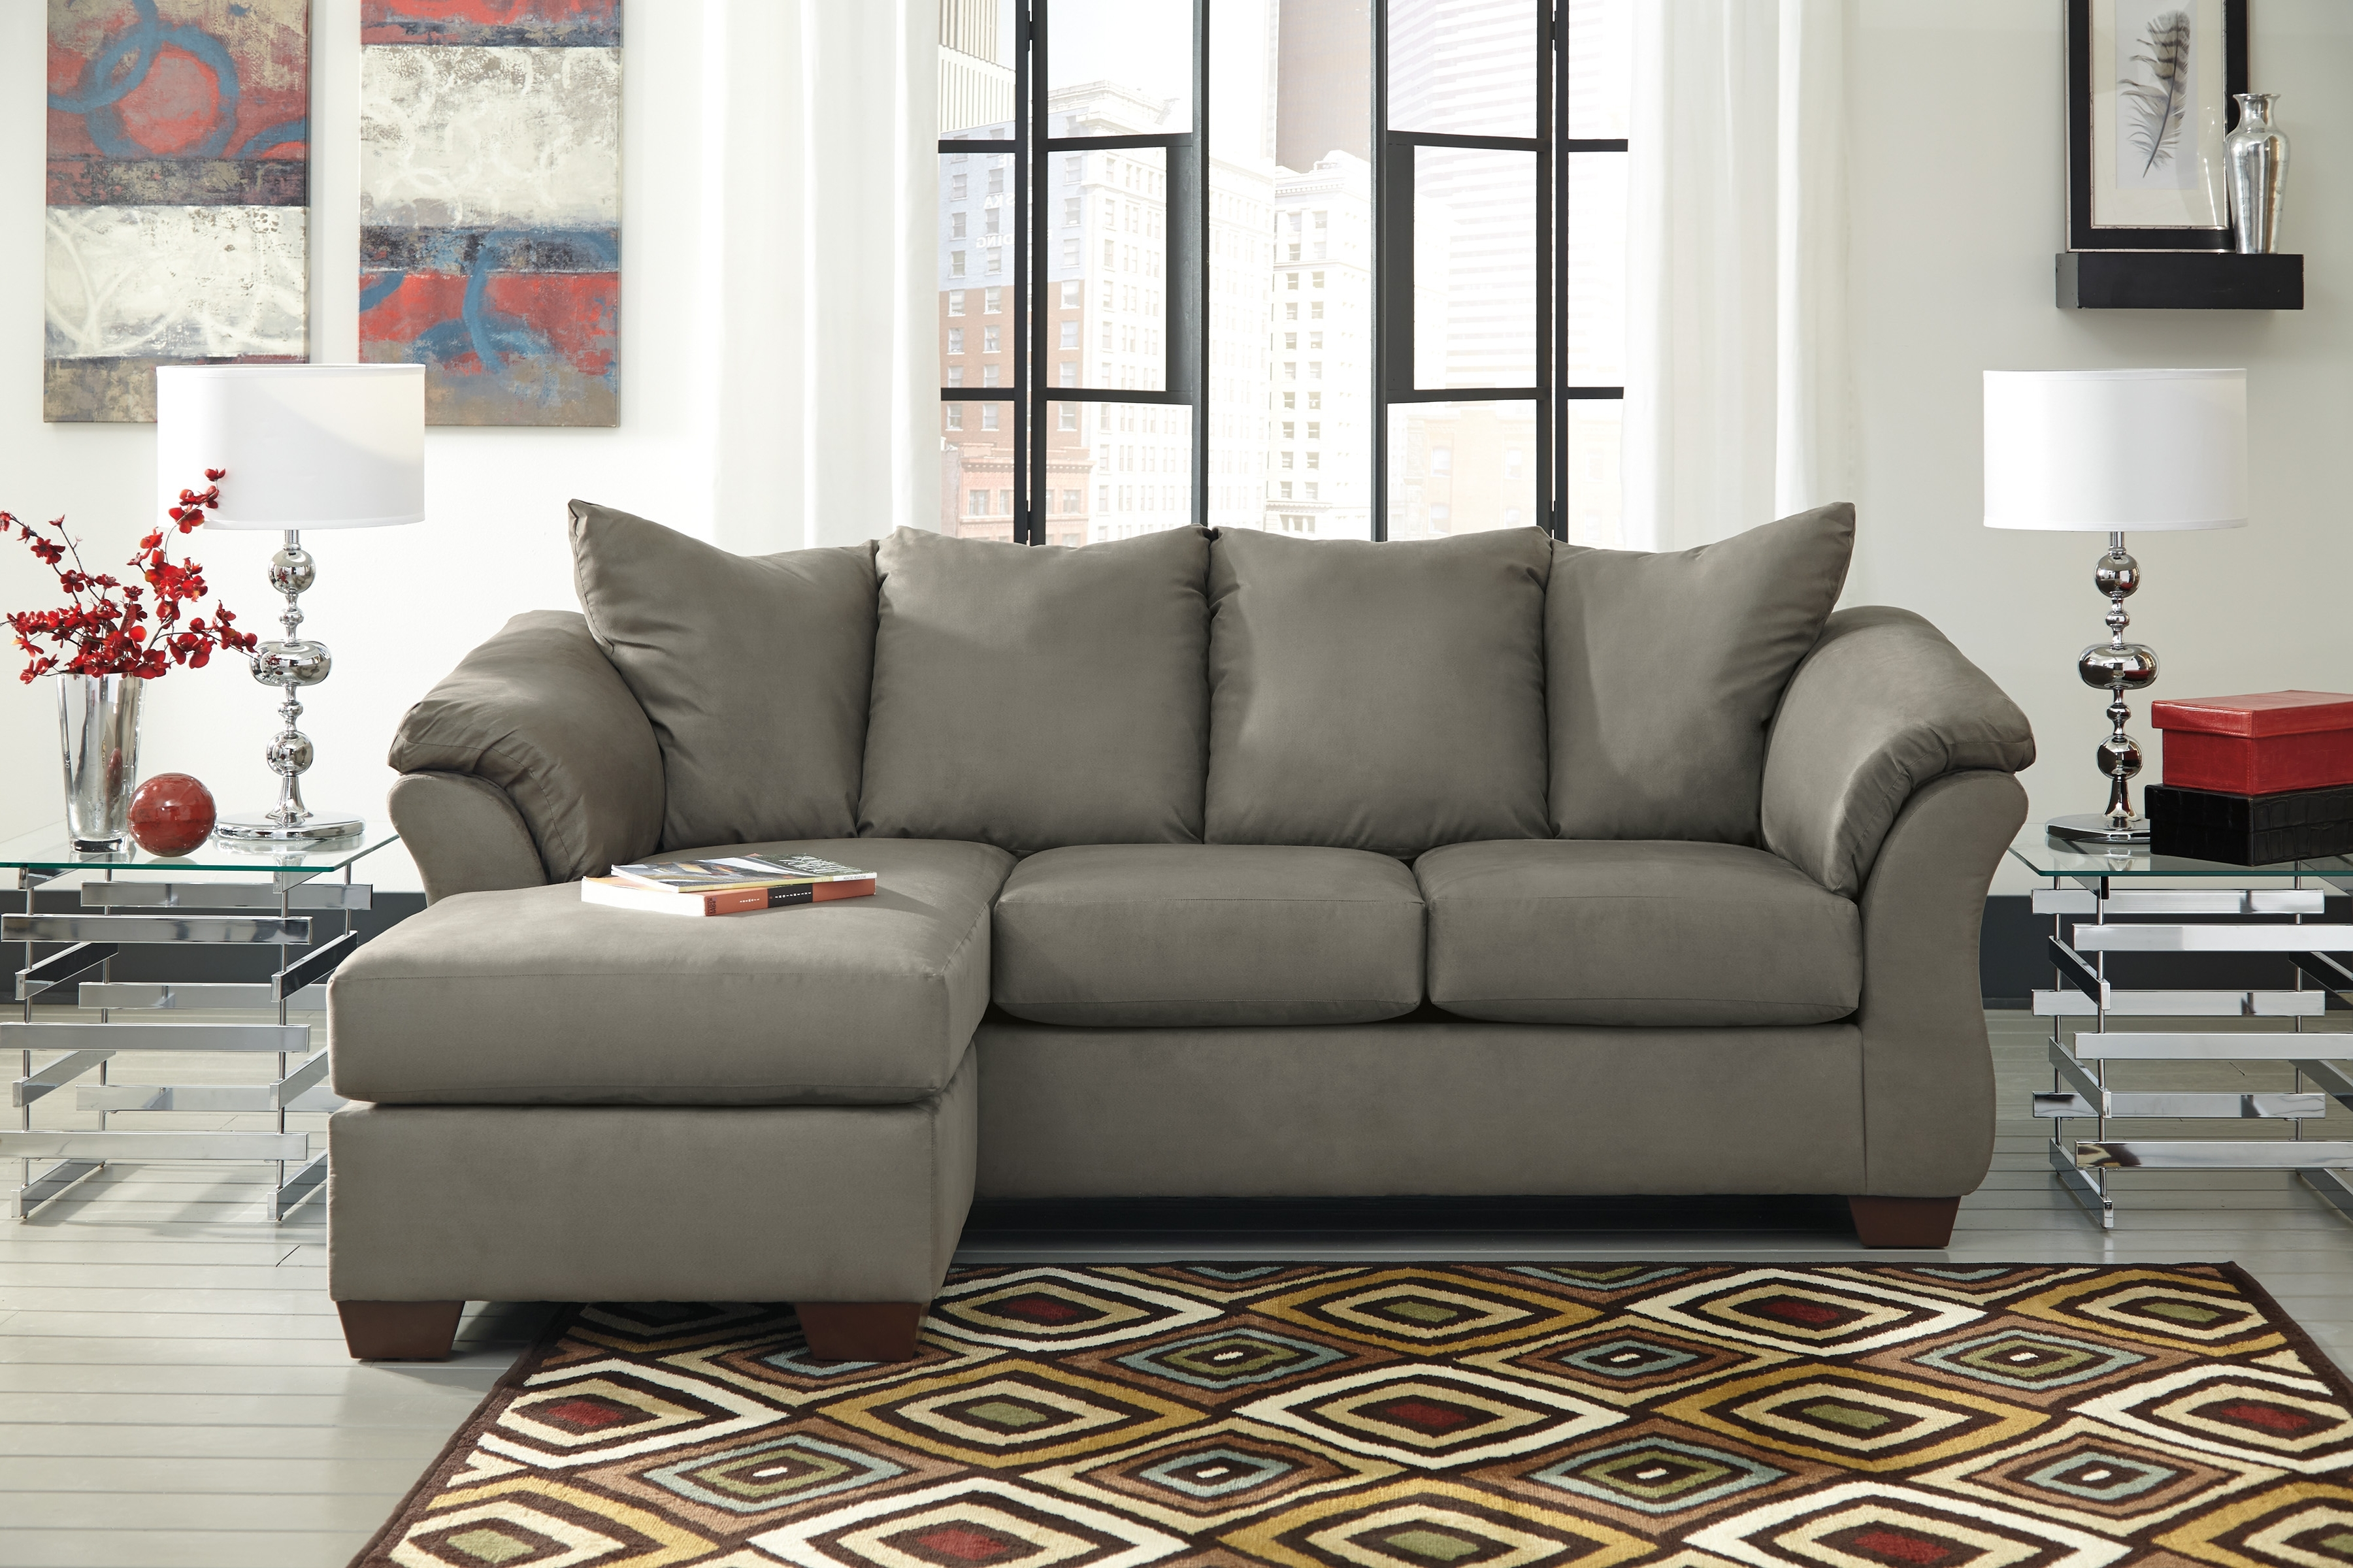 2018 Unique Ashley Furniture Sectional Sleeper Sofa 60 For 9 In Ashley Tufted Sofas (View 2 of 15)